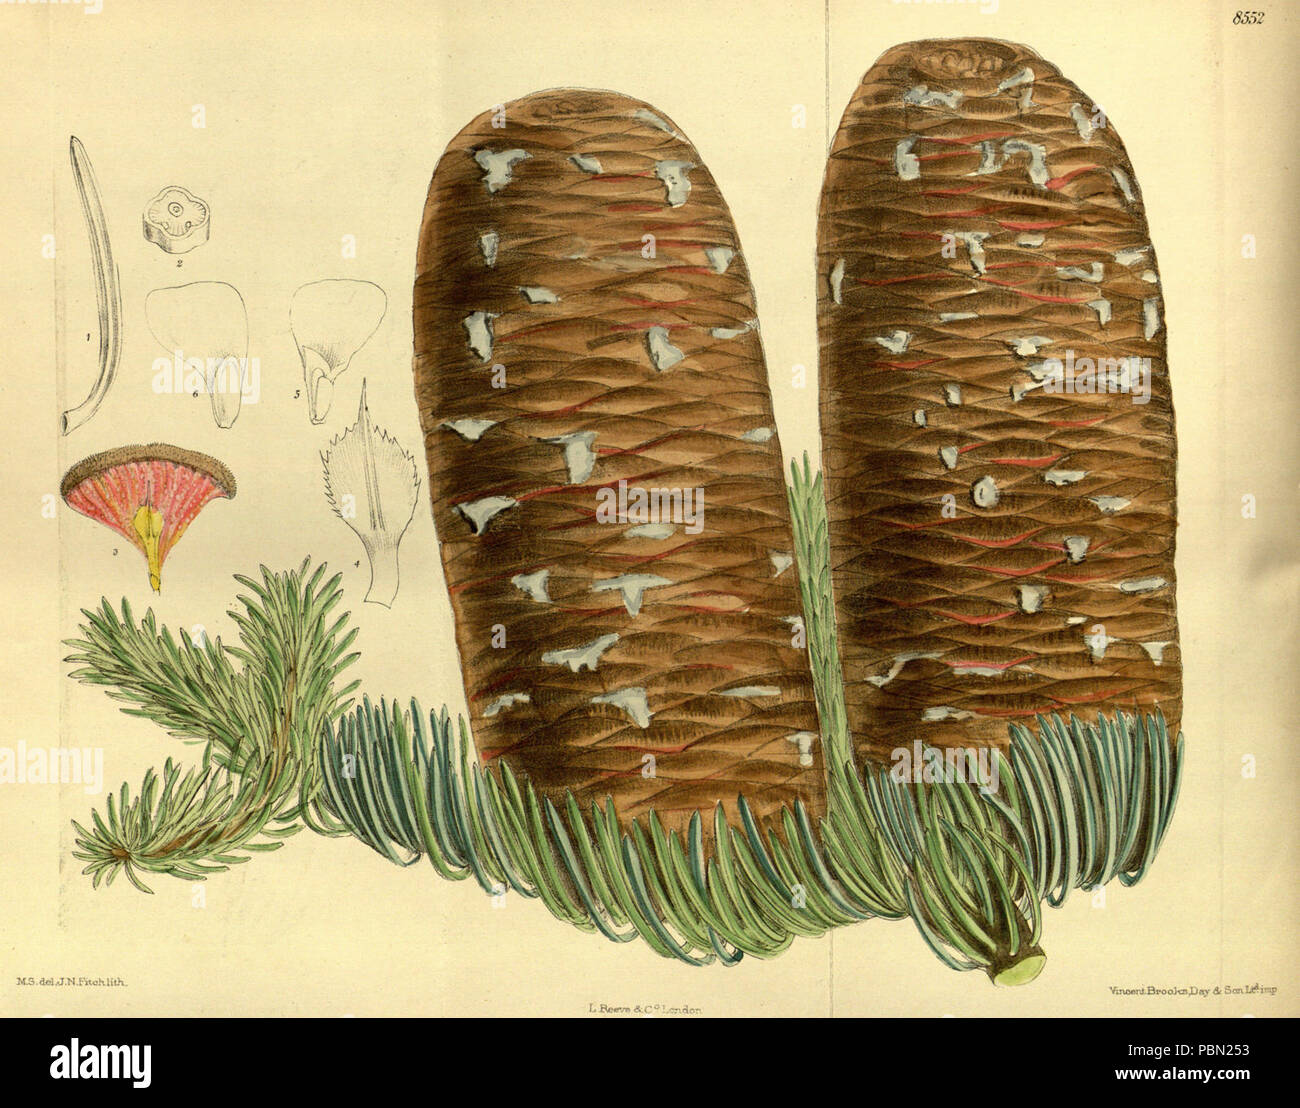 Abies magnifica 140-8552. - Stock Image